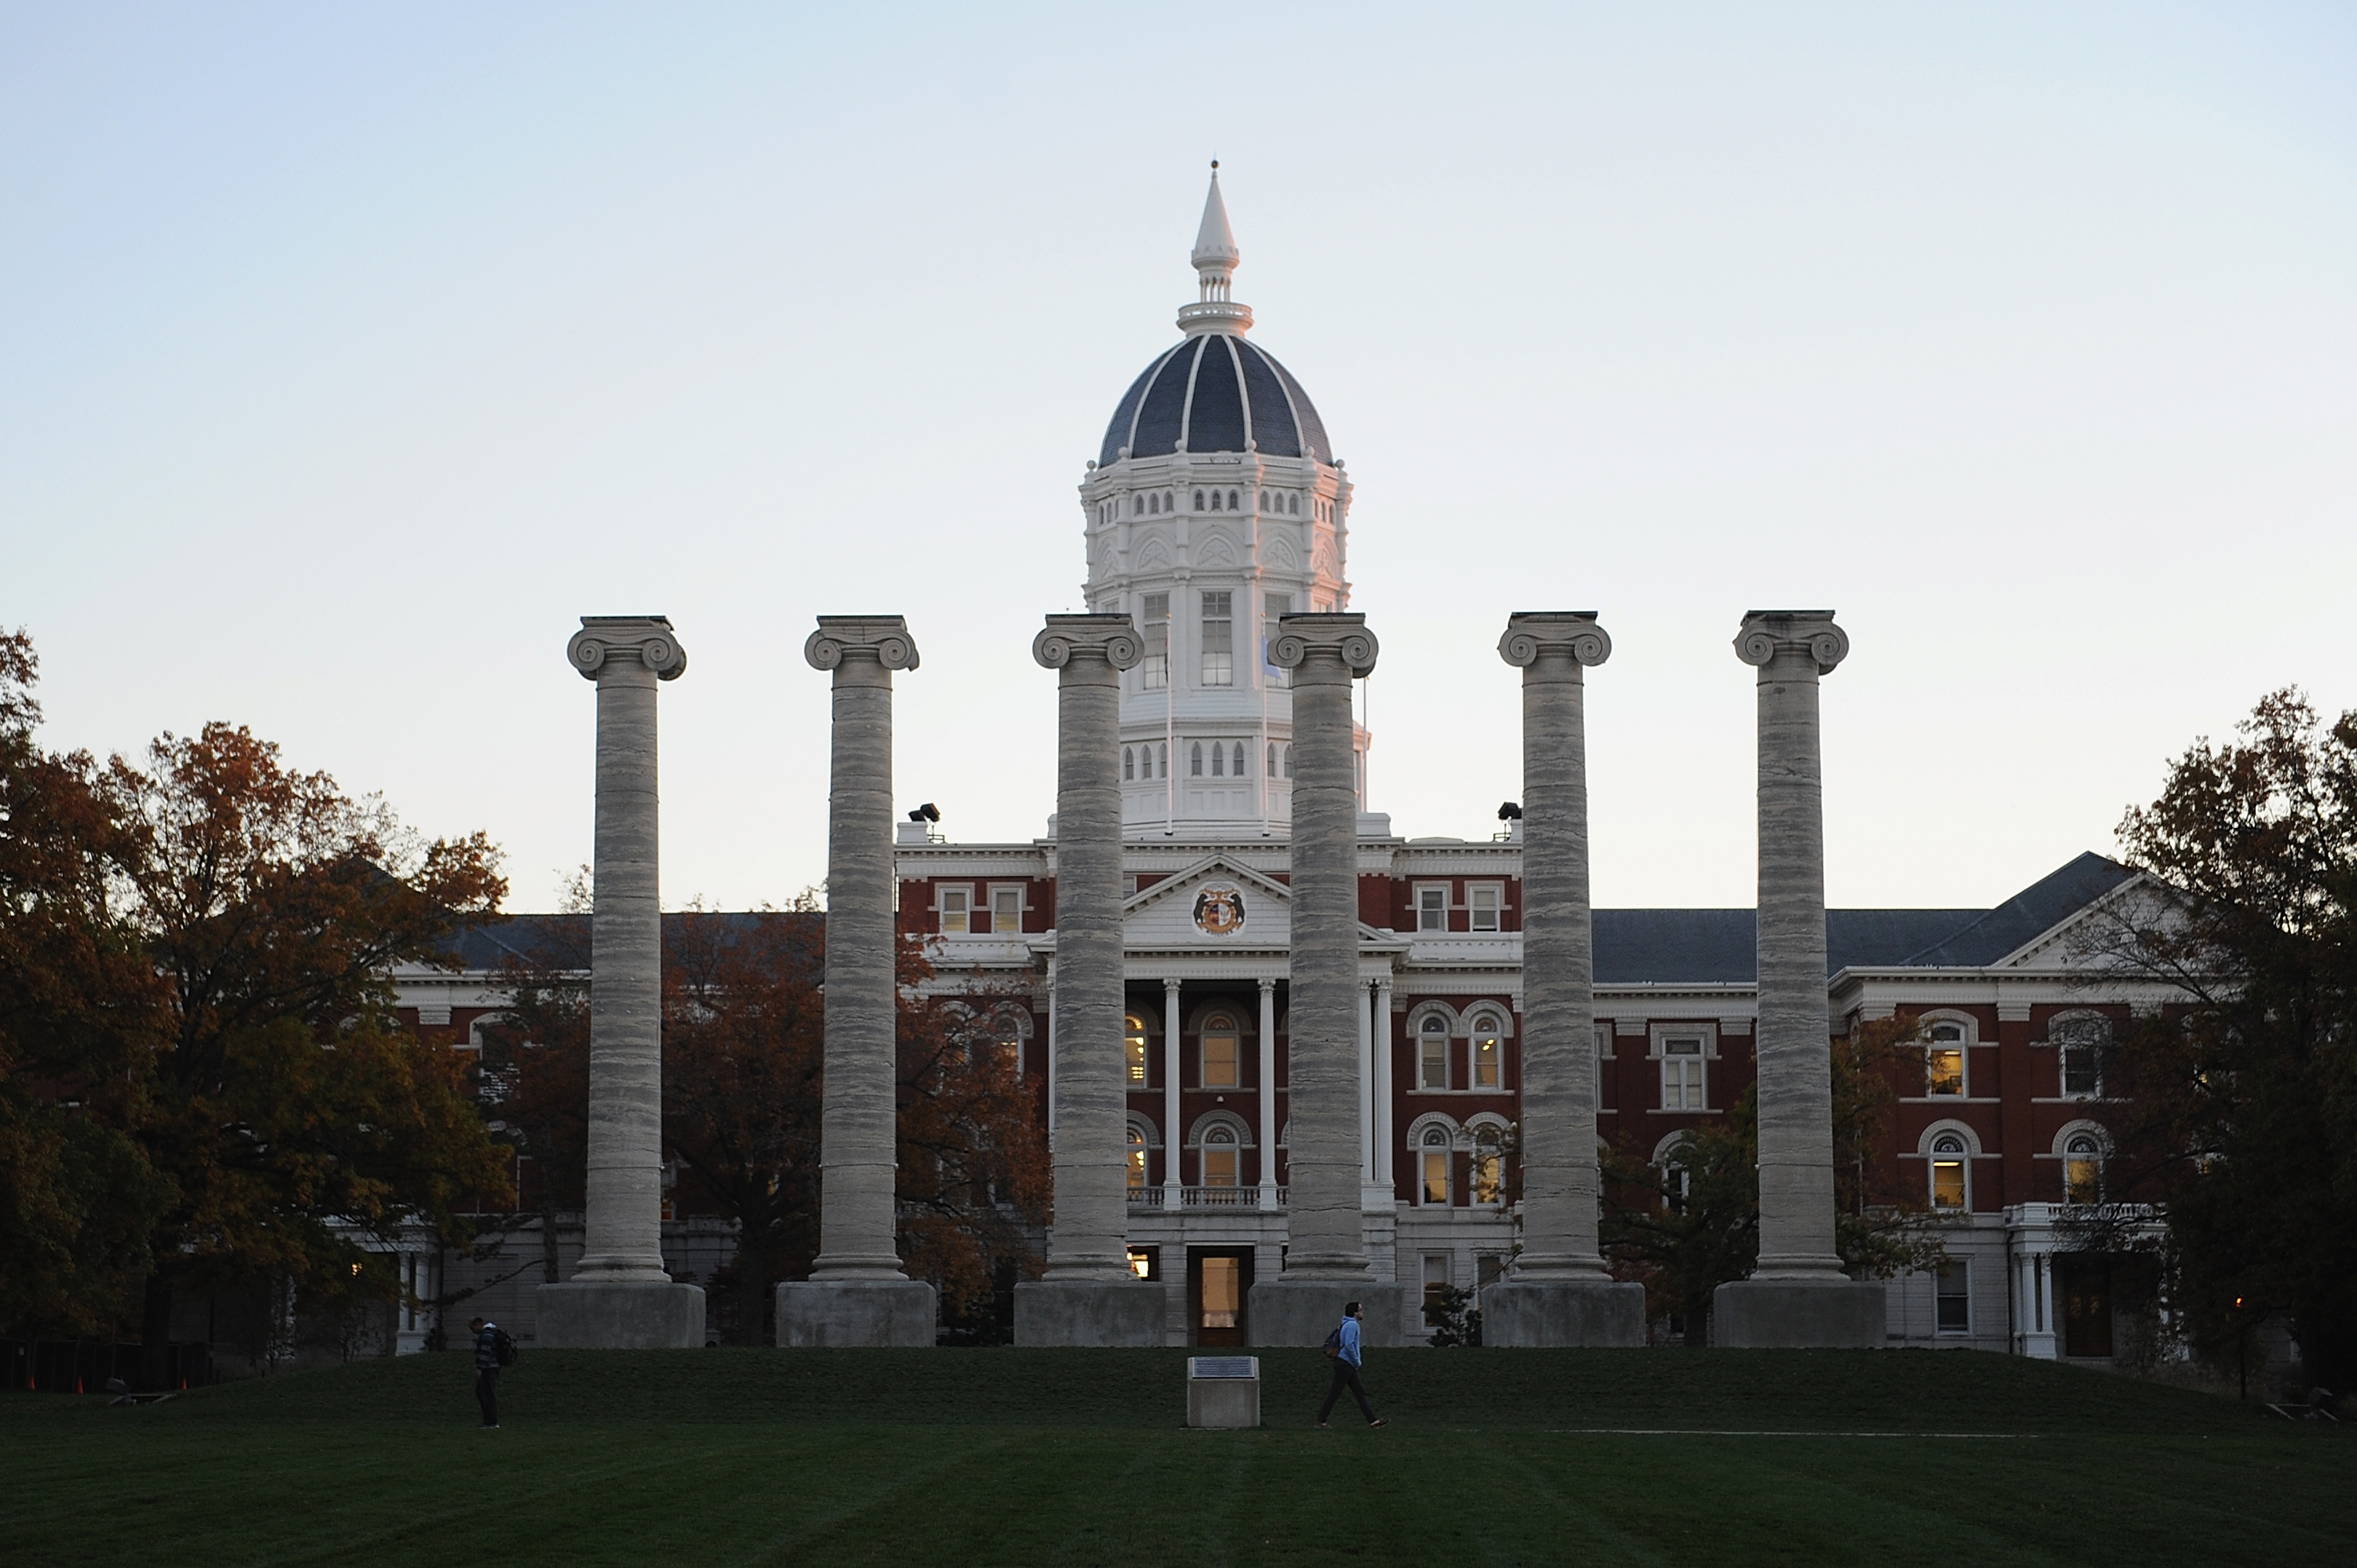 Academic Hall on the campus of University of Missouri, the author's alma mater.